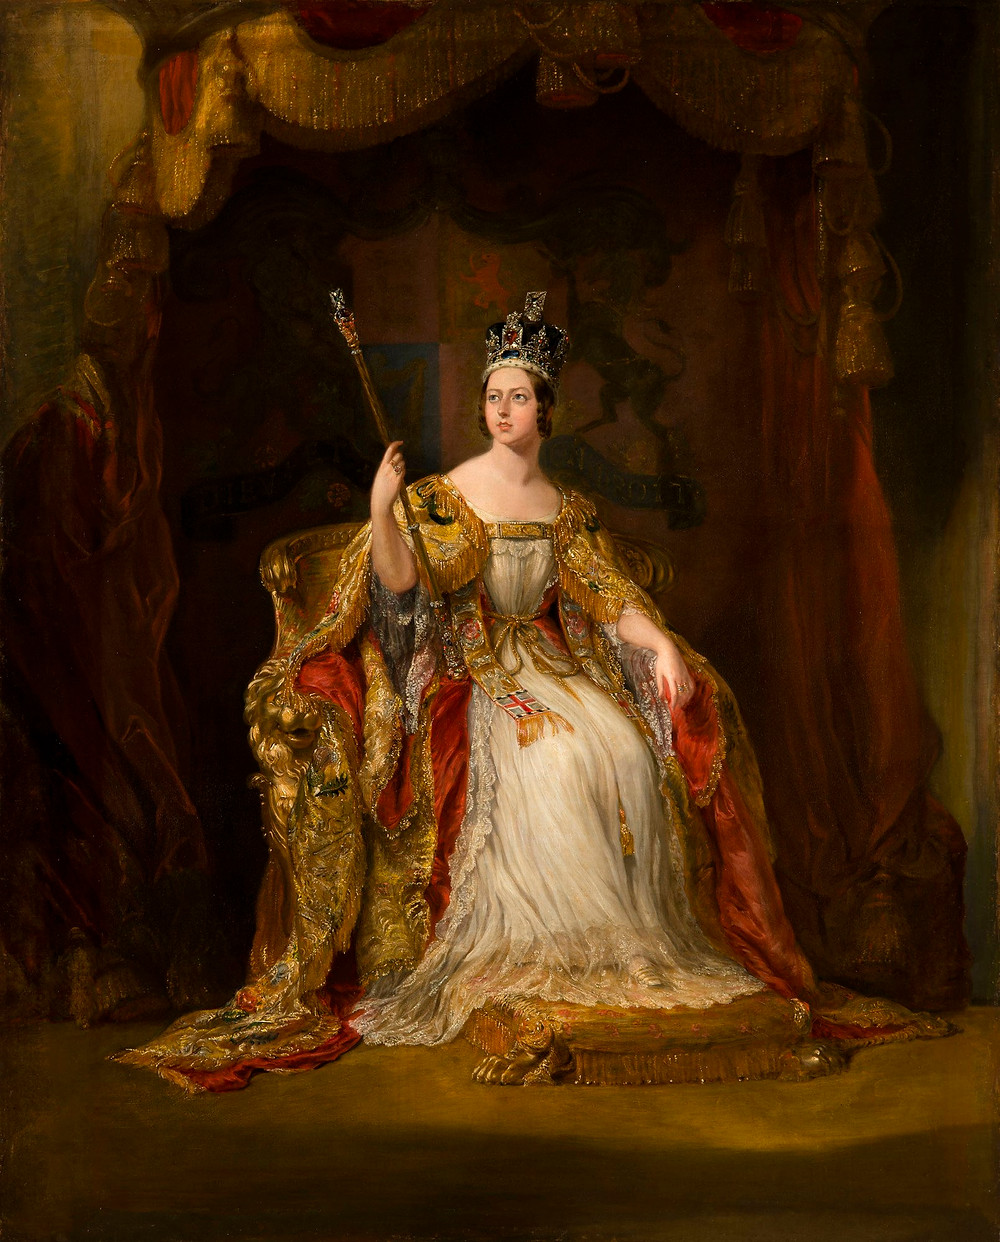 Queen Victoria portrait painting, by Sir George Hayter, c.1838-40